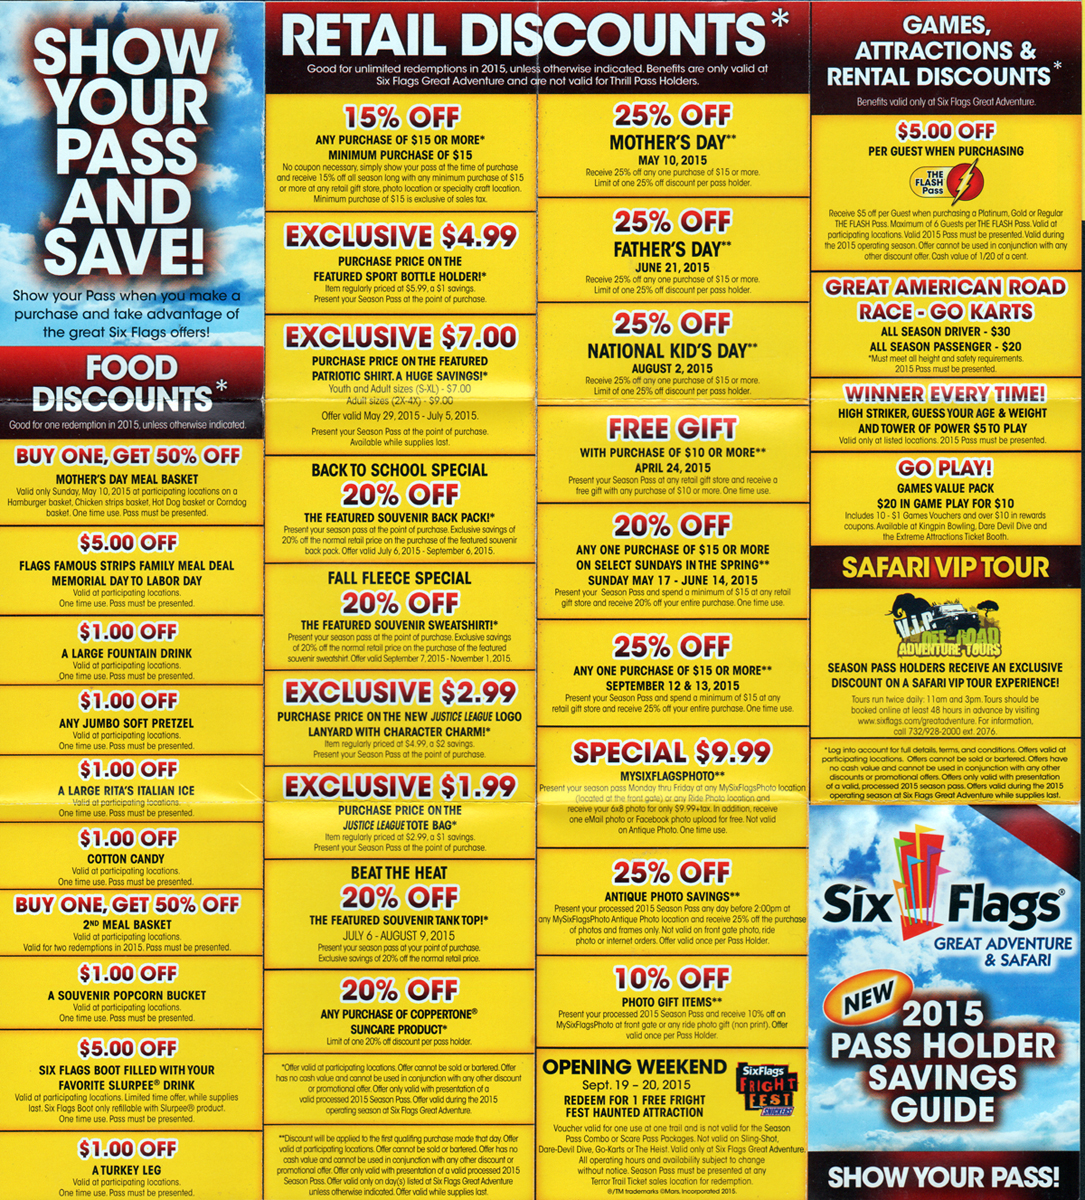 How to use Six Flags Coupons